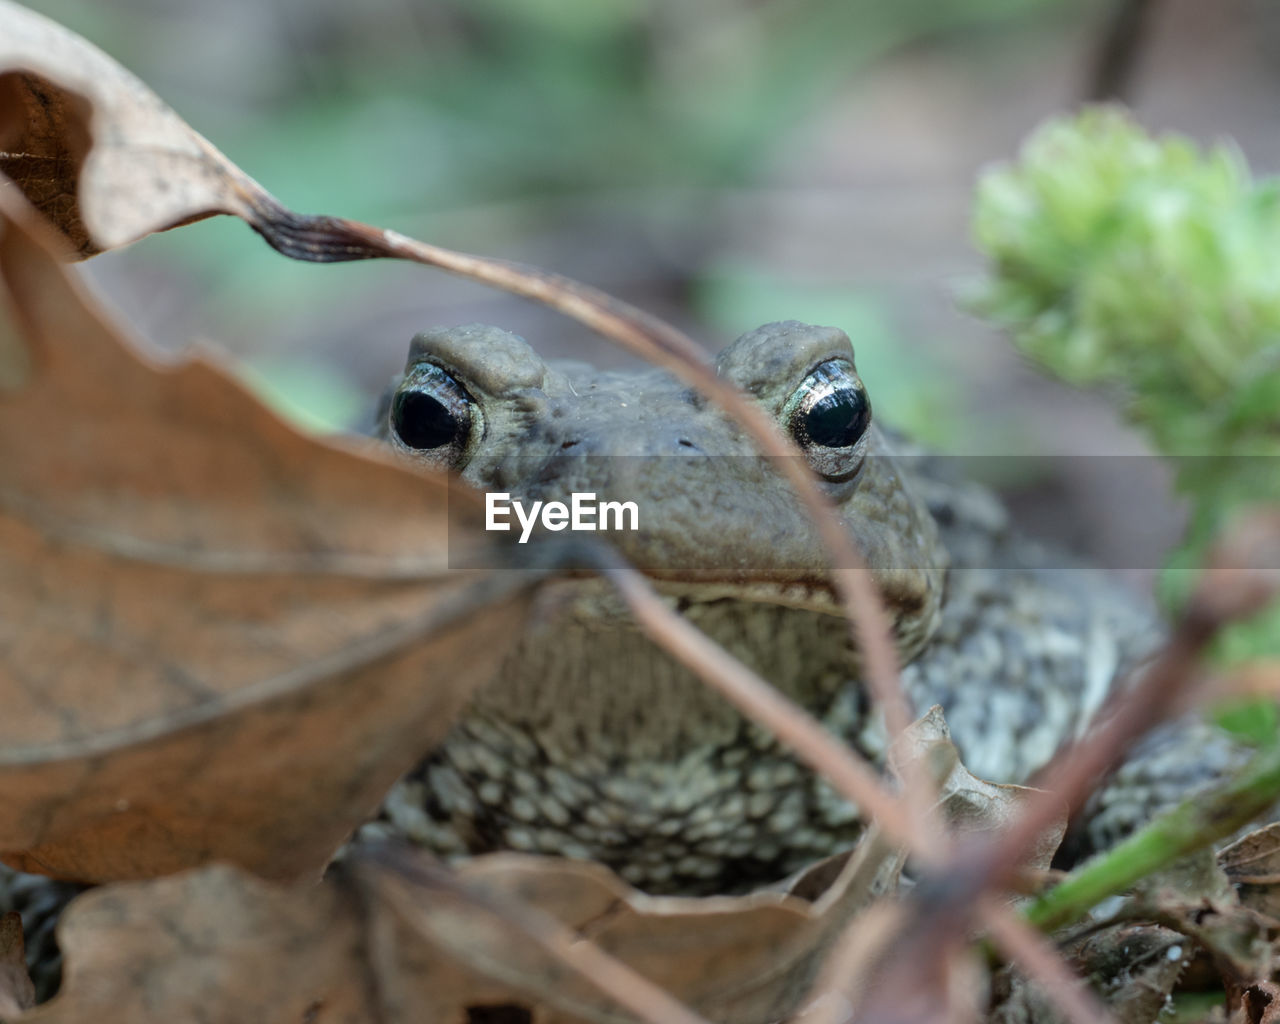 animal, animal wildlife, animals in the wild, animal themes, one animal, selective focus, vertebrate, close-up, no people, day, nature, reptile, animal body part, outdoors, plant part, leaf, zoology, insect, animal head, plant, animal eye